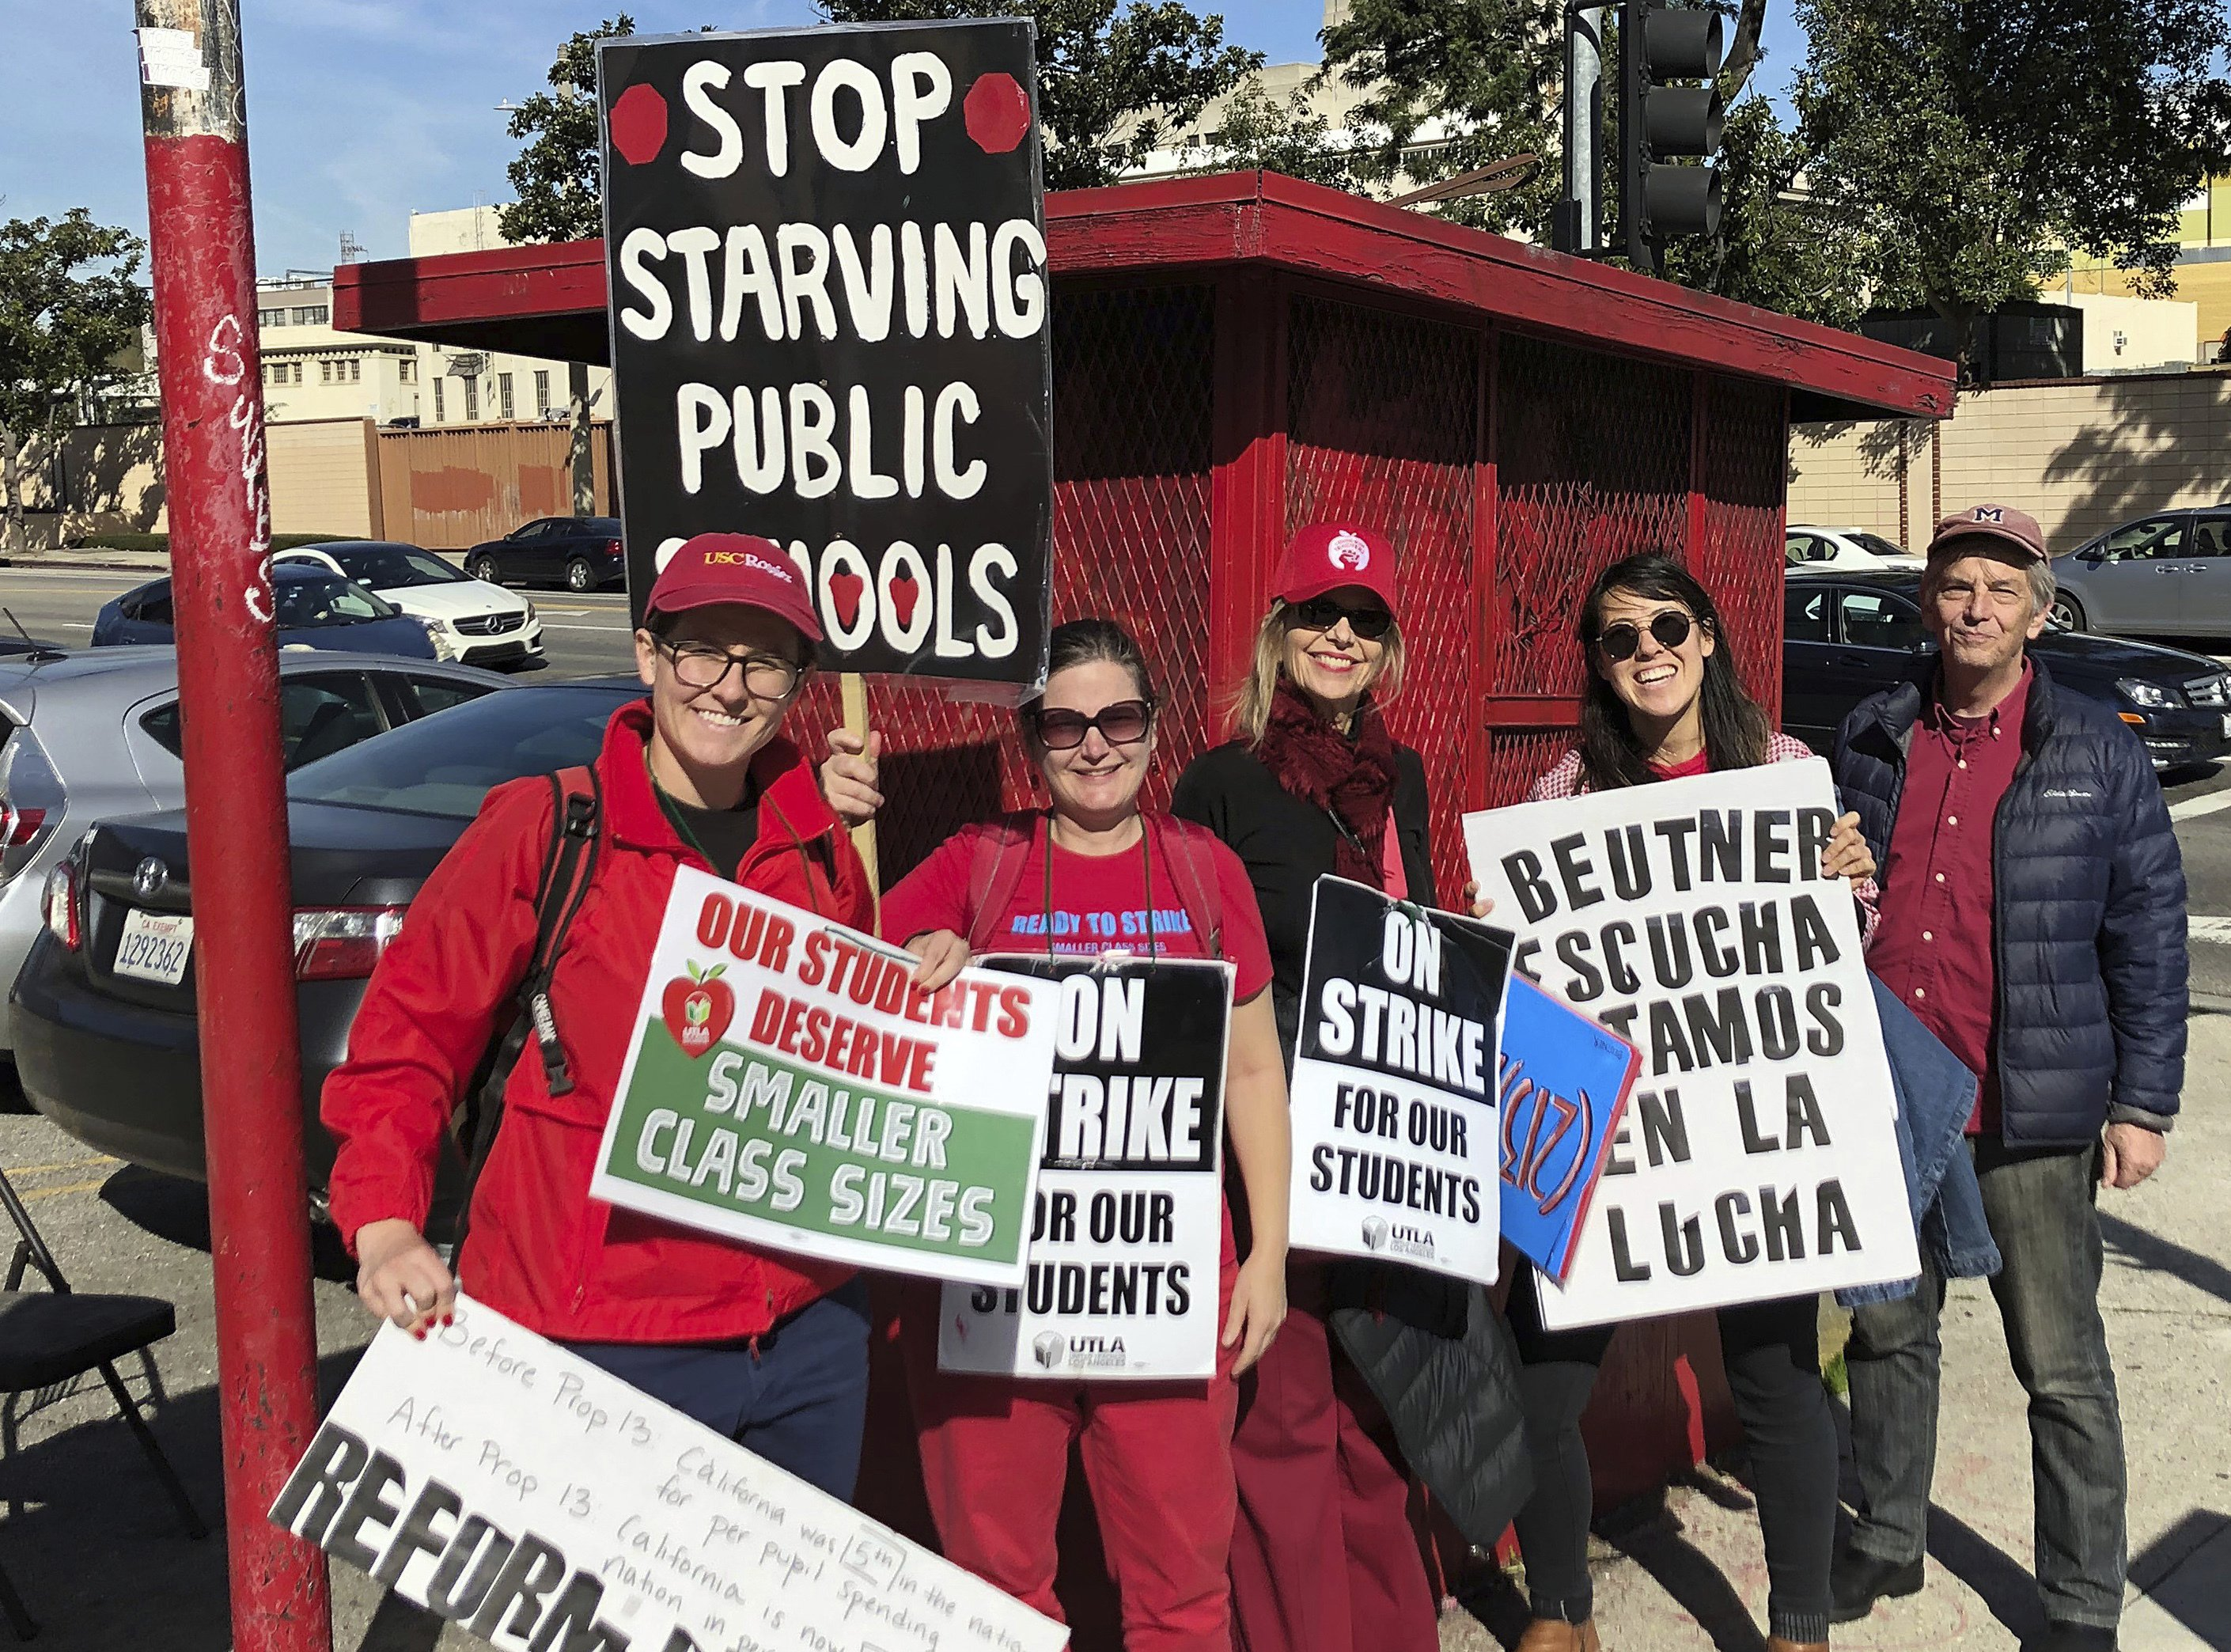 Los Angeles teachers approve contract, end strike